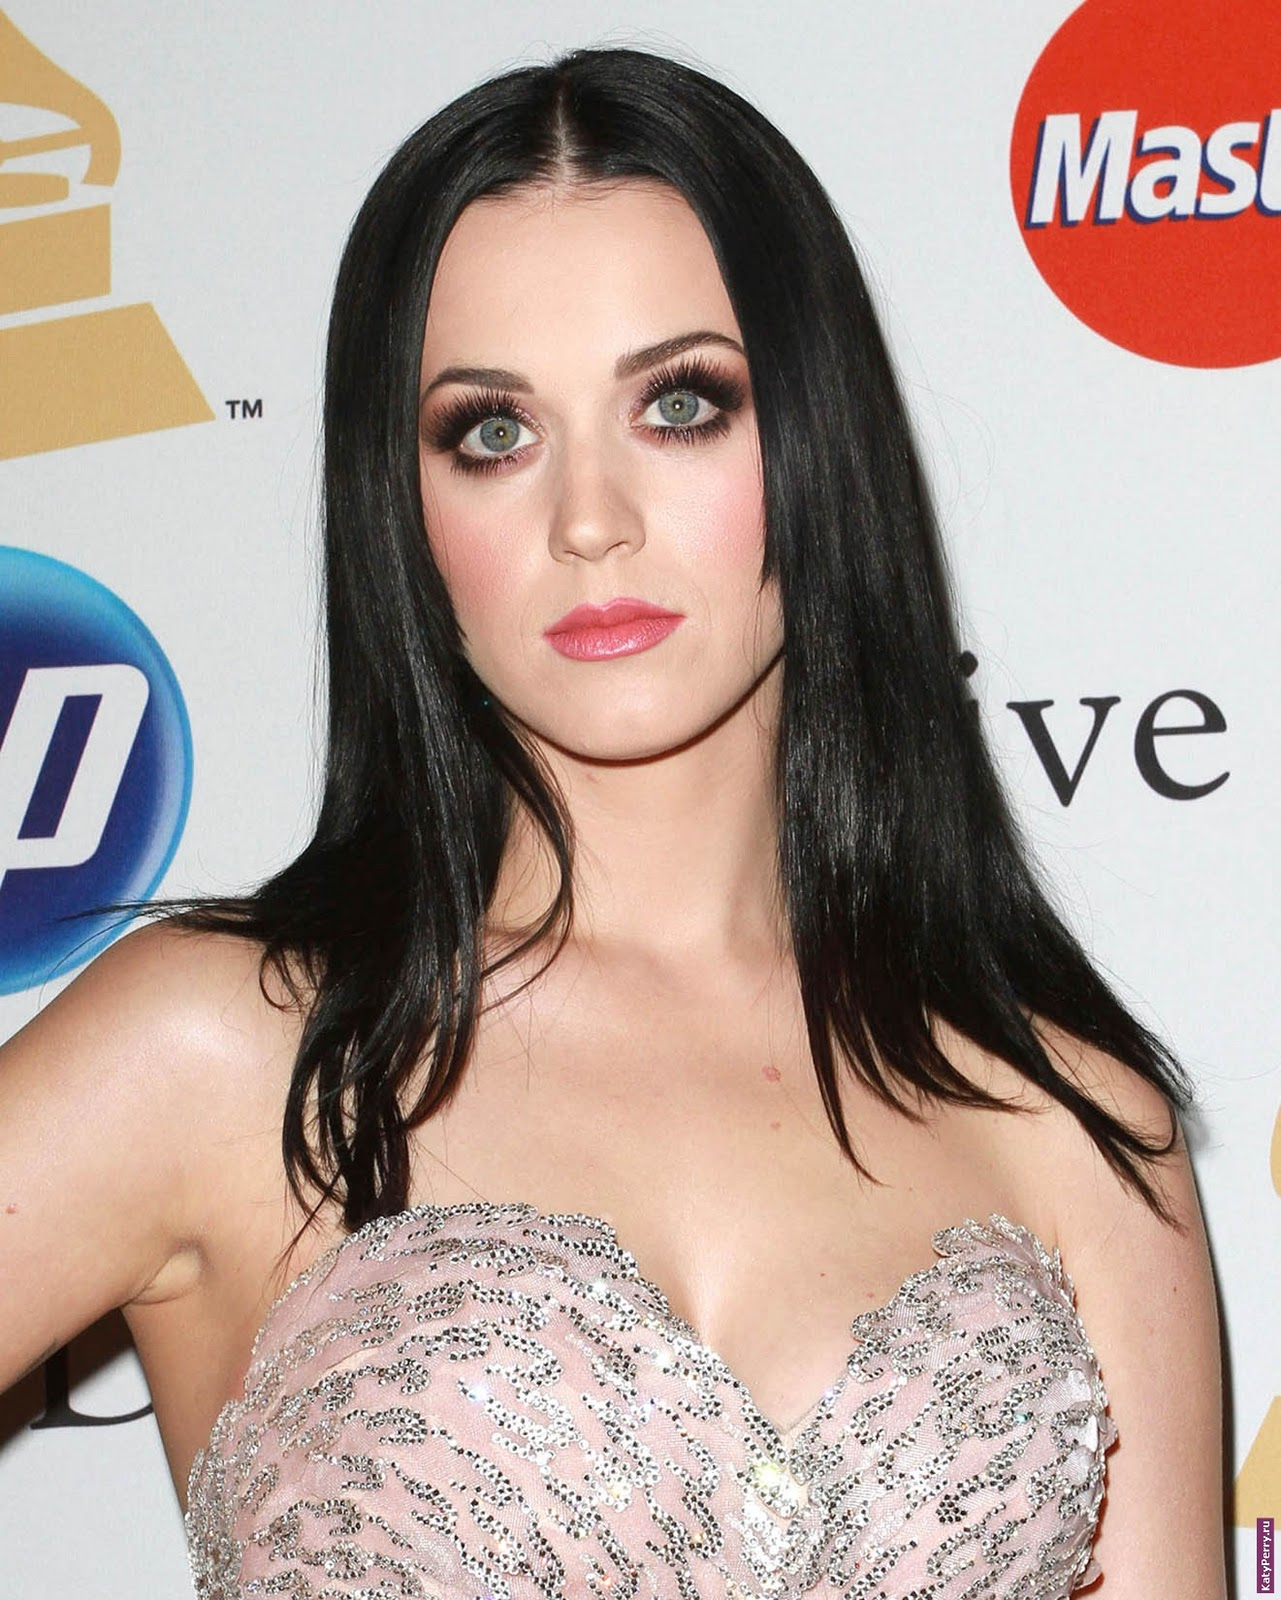 http://1.bp.blogspot.com/-kLN9muPWRx4/TuW0j4gqWVI/AAAAAAAABH4/jXJo_j9rEWk/s1600/Katy-Perry-music-photos-pics-dresses-pictures-lyrics+%25282%2529.jpg